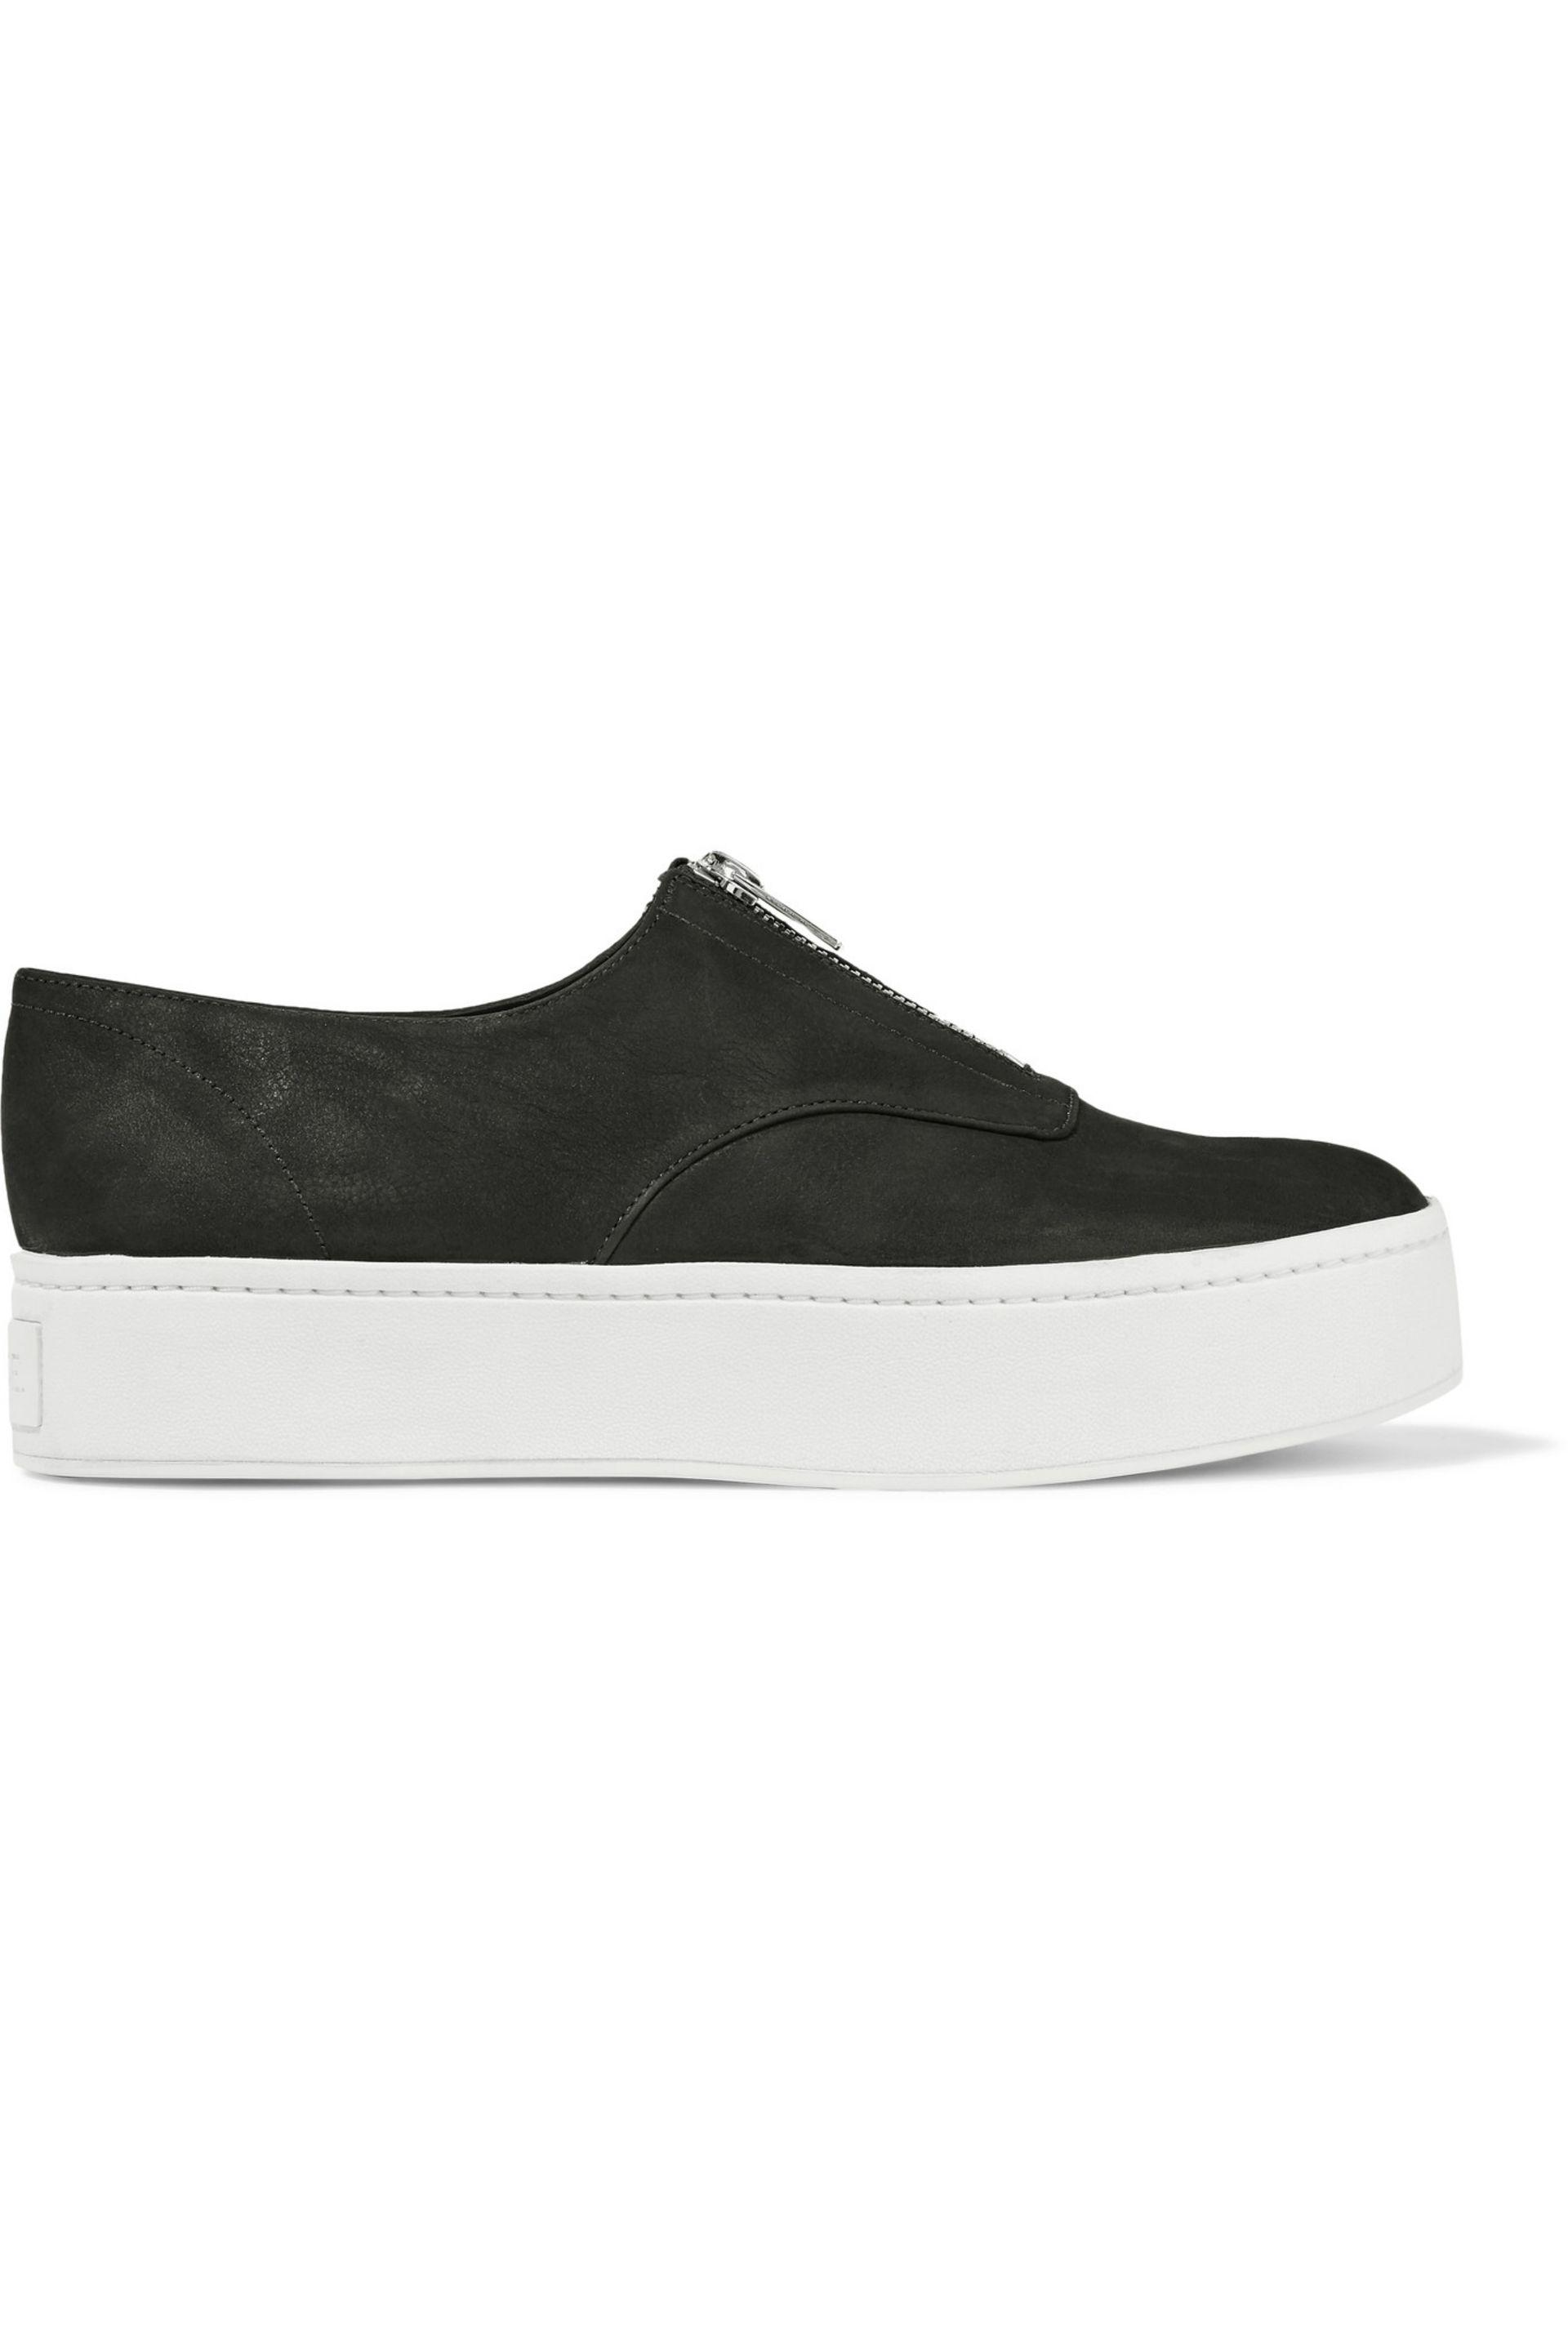 Vince. Women's Black Warner Nubuck Sneakers